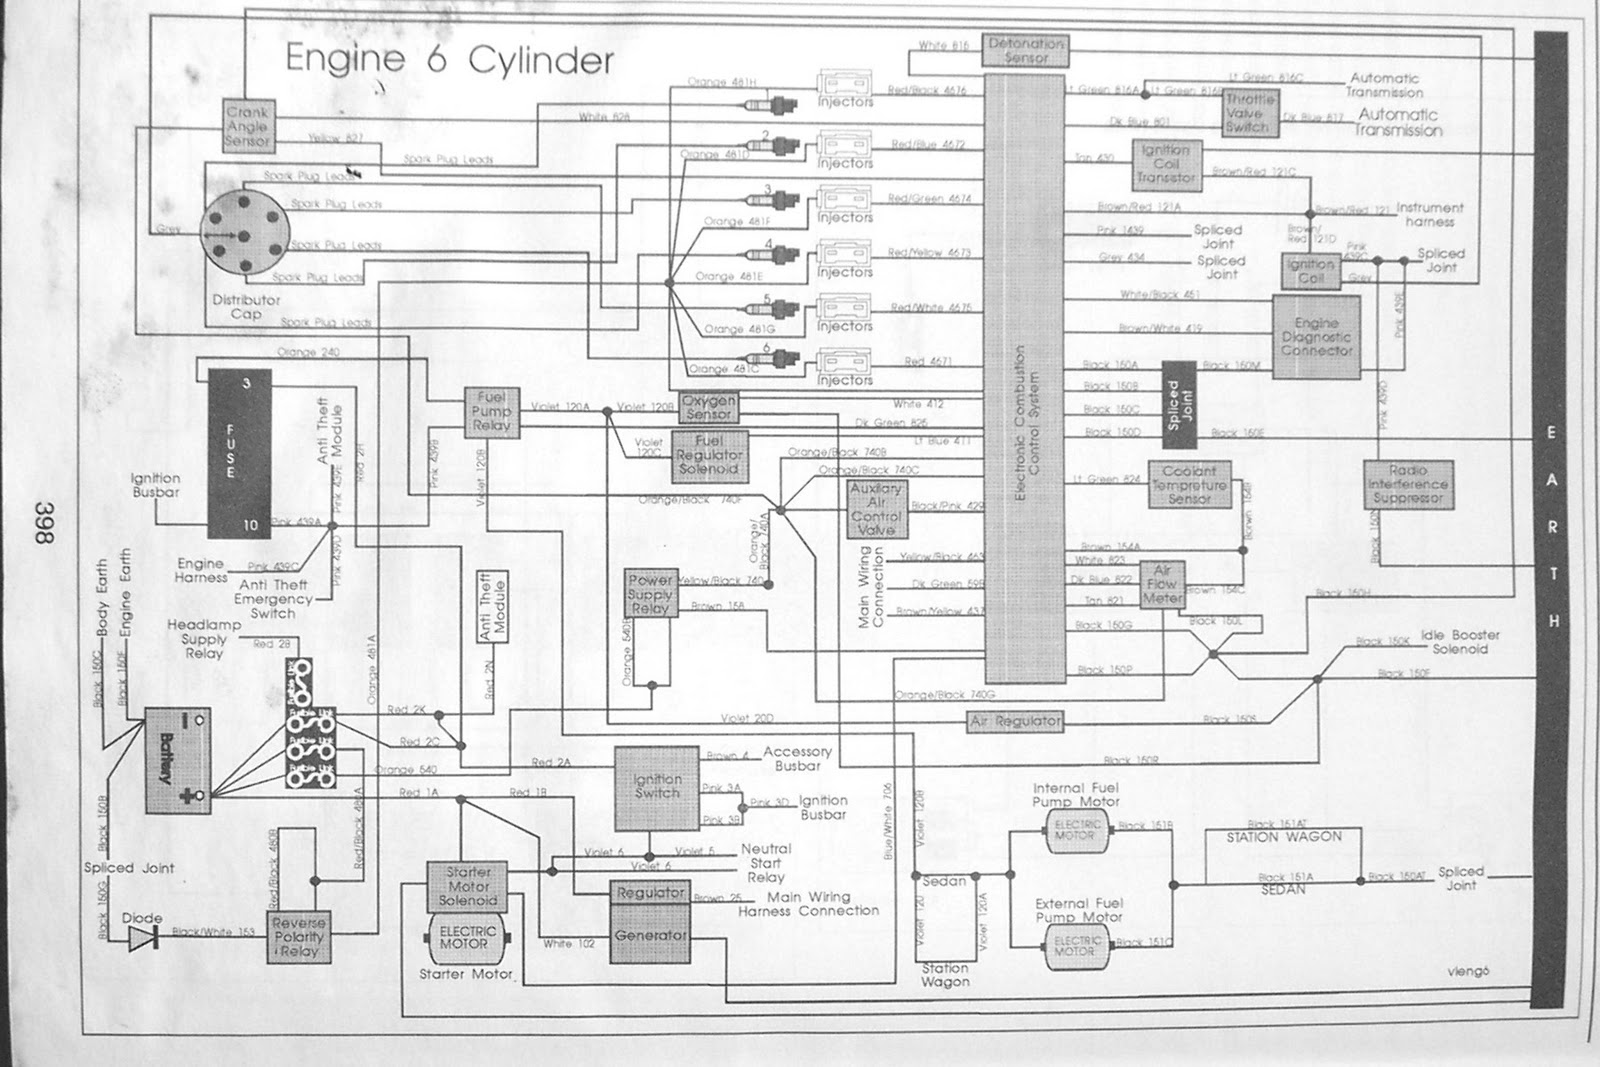 rb30 wiring diagrams 280zx project rh 280zxproject blogspot com Automotive Wiring Diagrams HVAC Wiring Diagrams